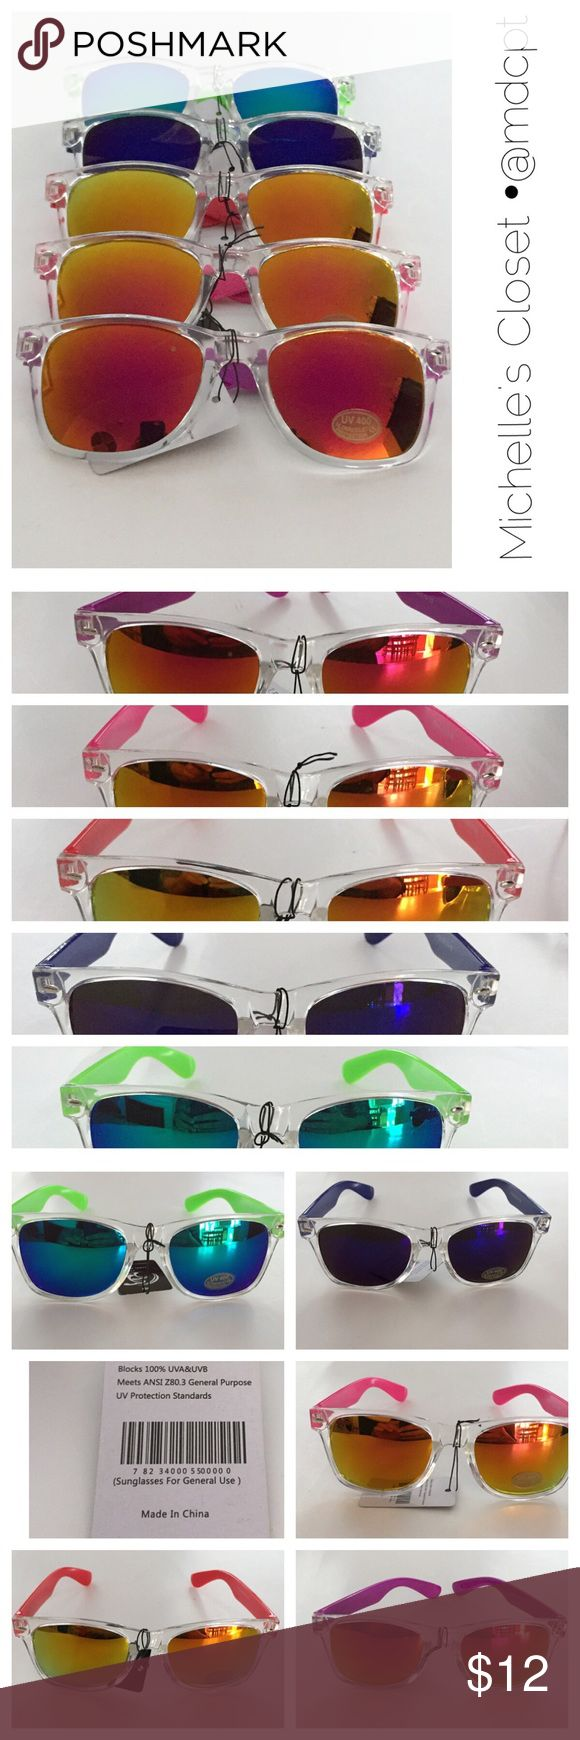 Transparent and color frame sunglasses Wayfarer shaped plastic frames, frame is clear in front, legs in different colors.  Color changing mirror lenses. Clear frames are trendy now. Accessories Sunglasses